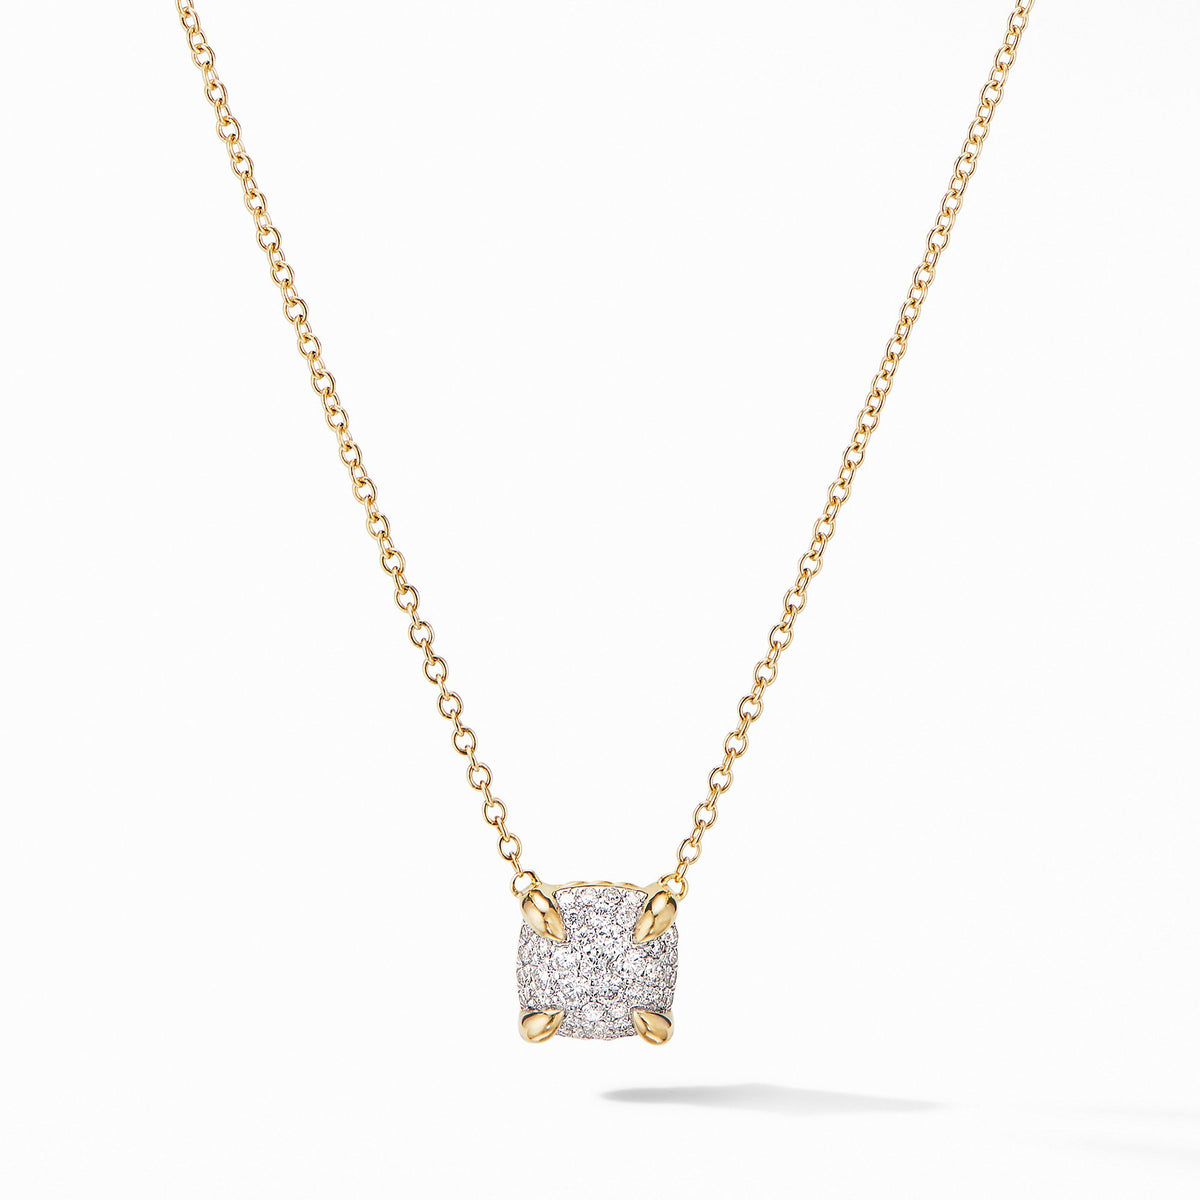 Chatelaine Pendant Necklace in 18K Yellow Gold with Full  Pave Diamonds